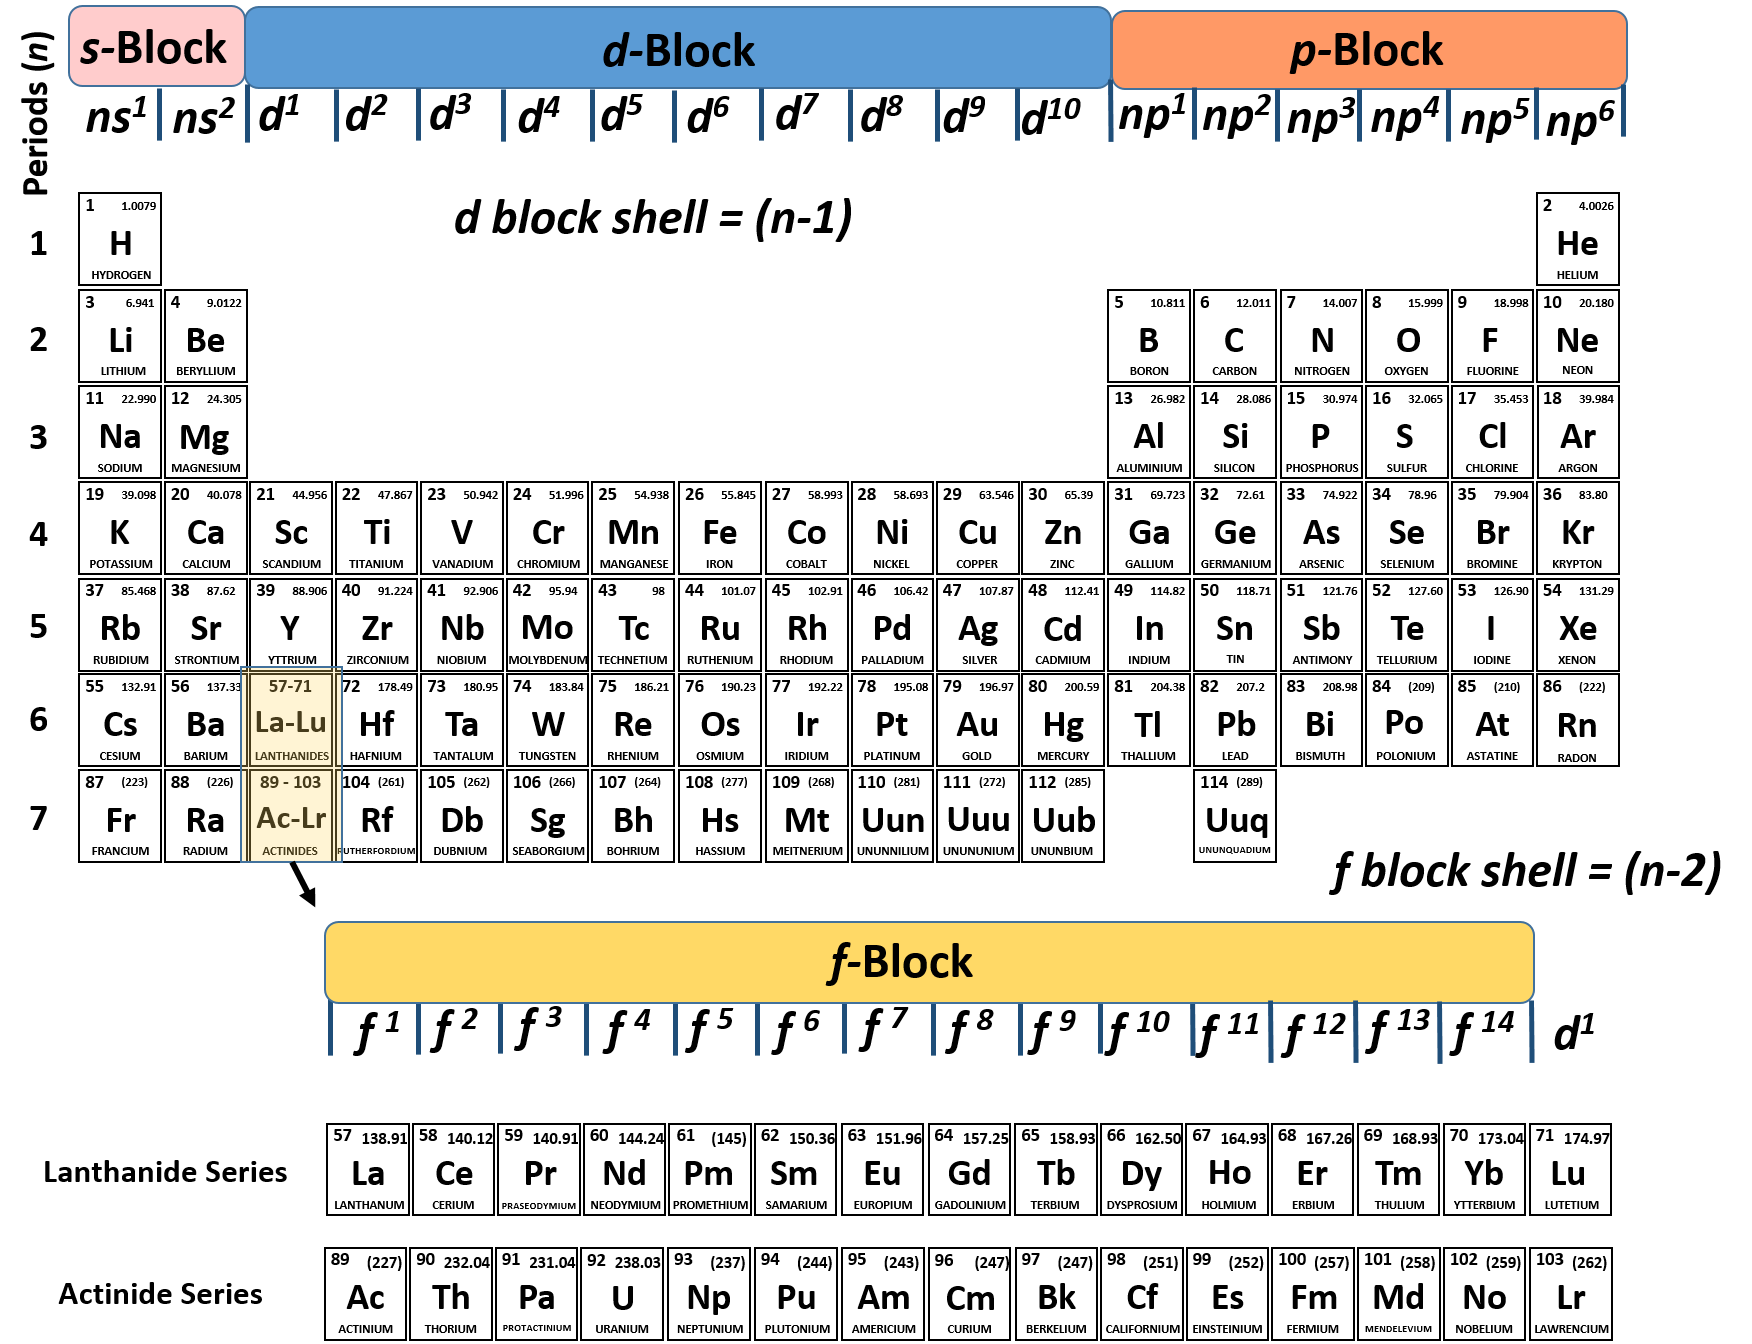 why do elements in the same family generally have similar properties